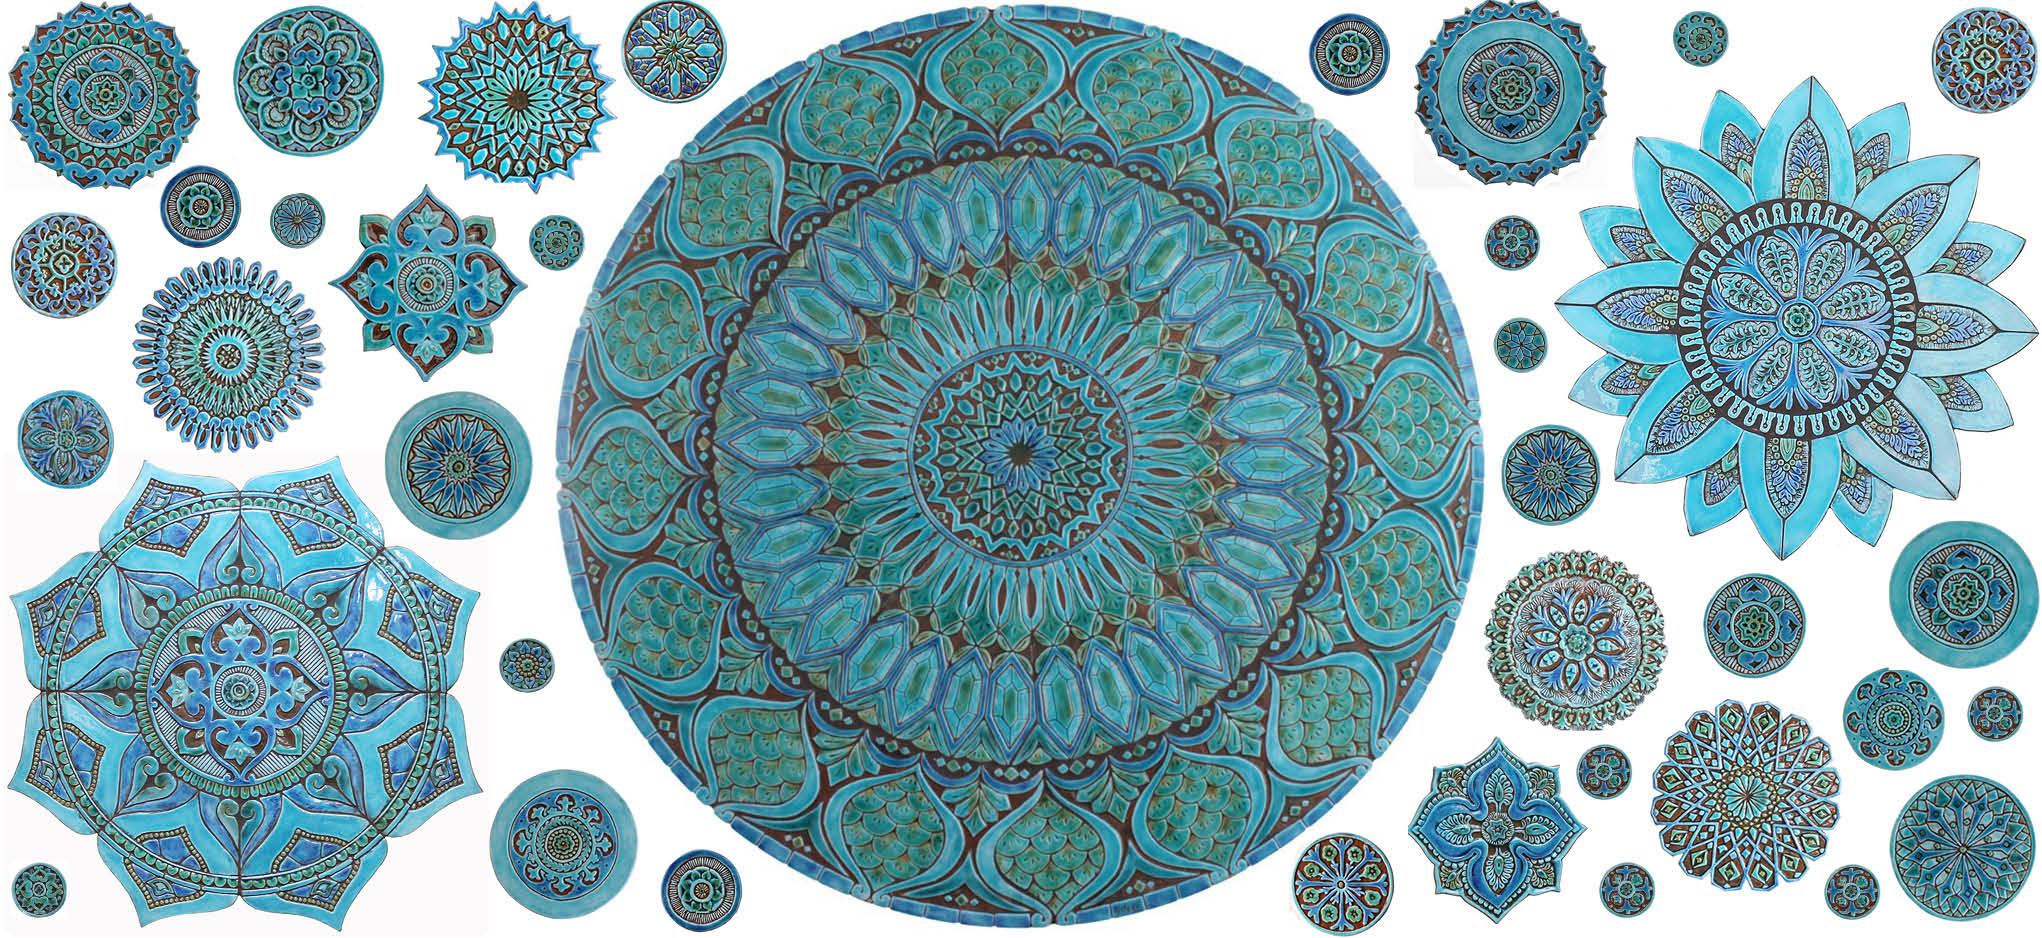 Turquoise circles wall art image